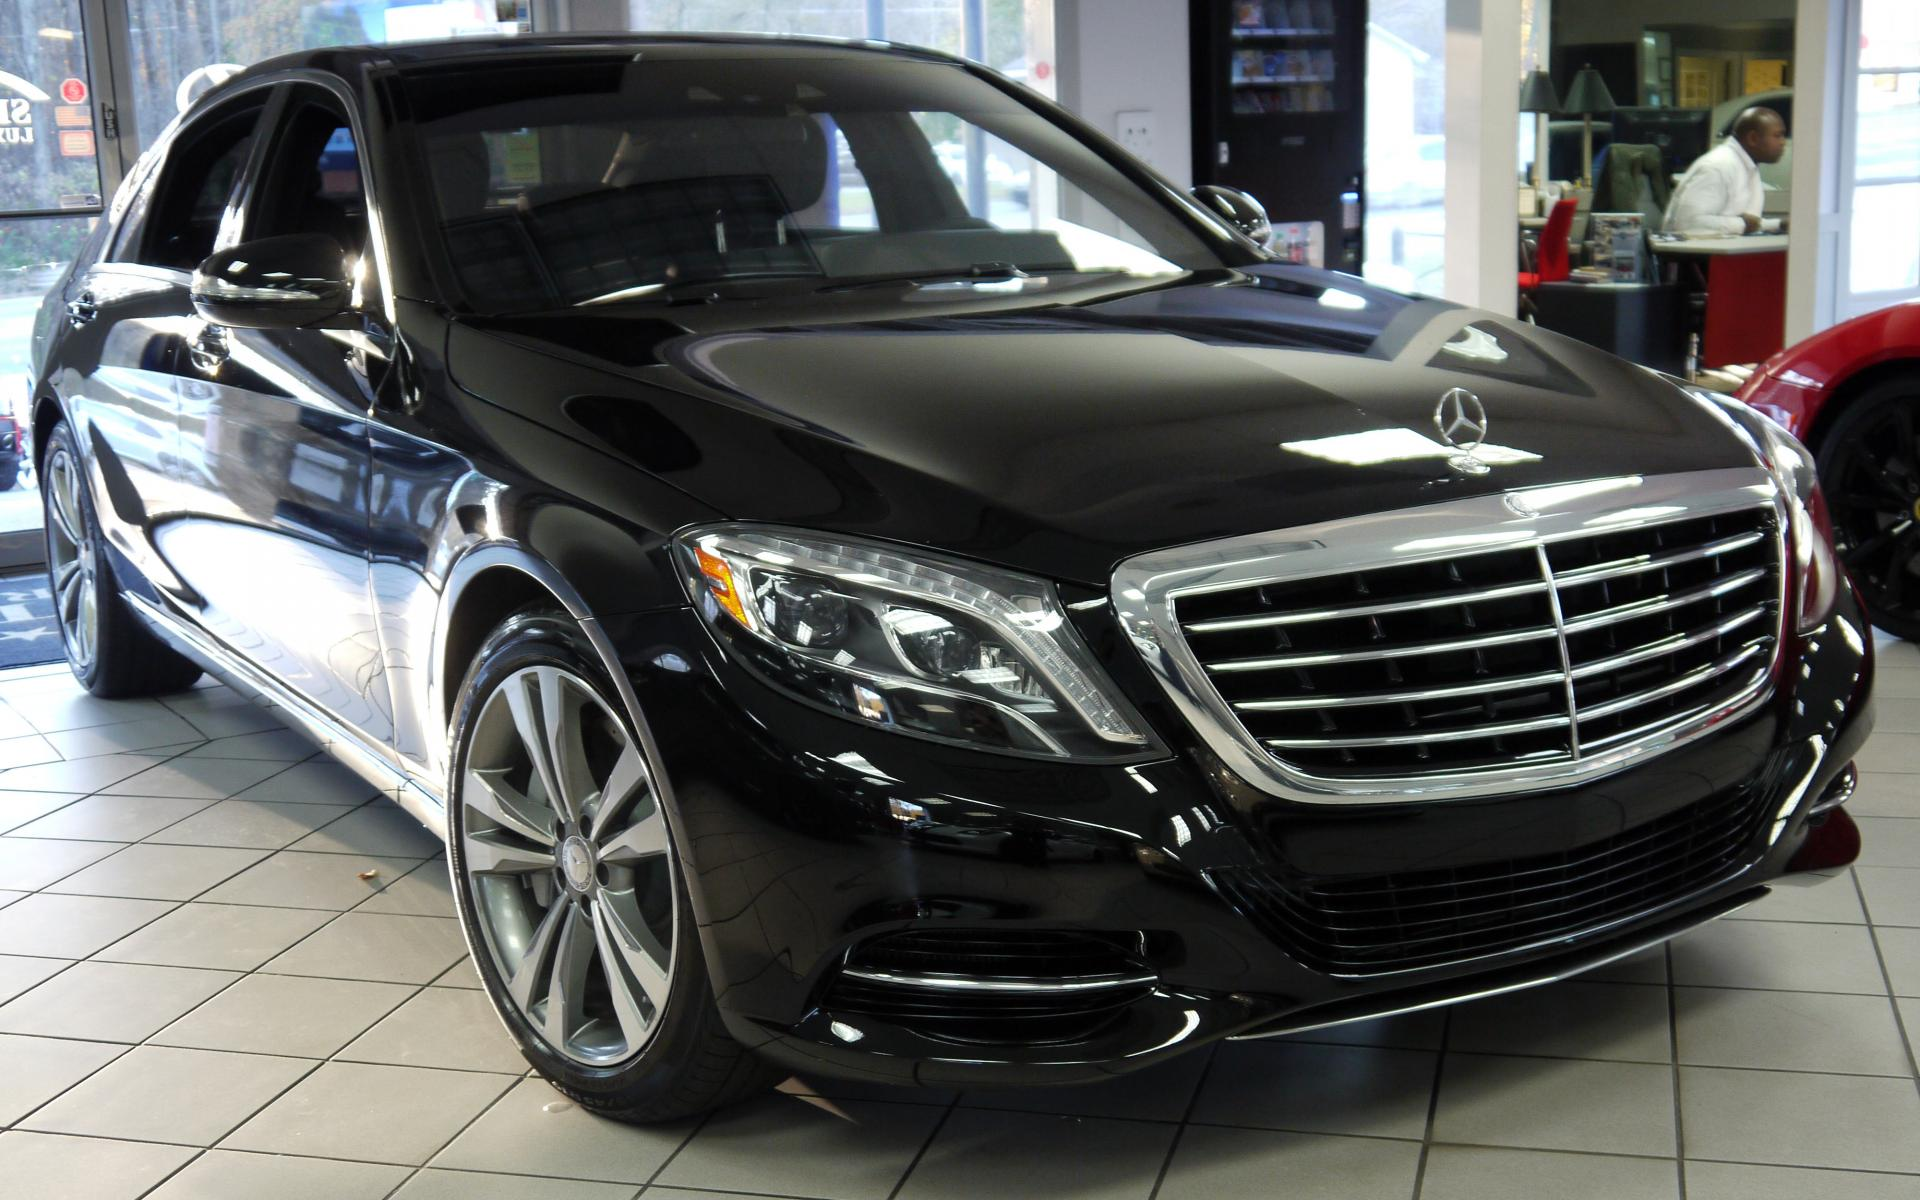 Mercedes benz leasing options for Mercedes benz lease options